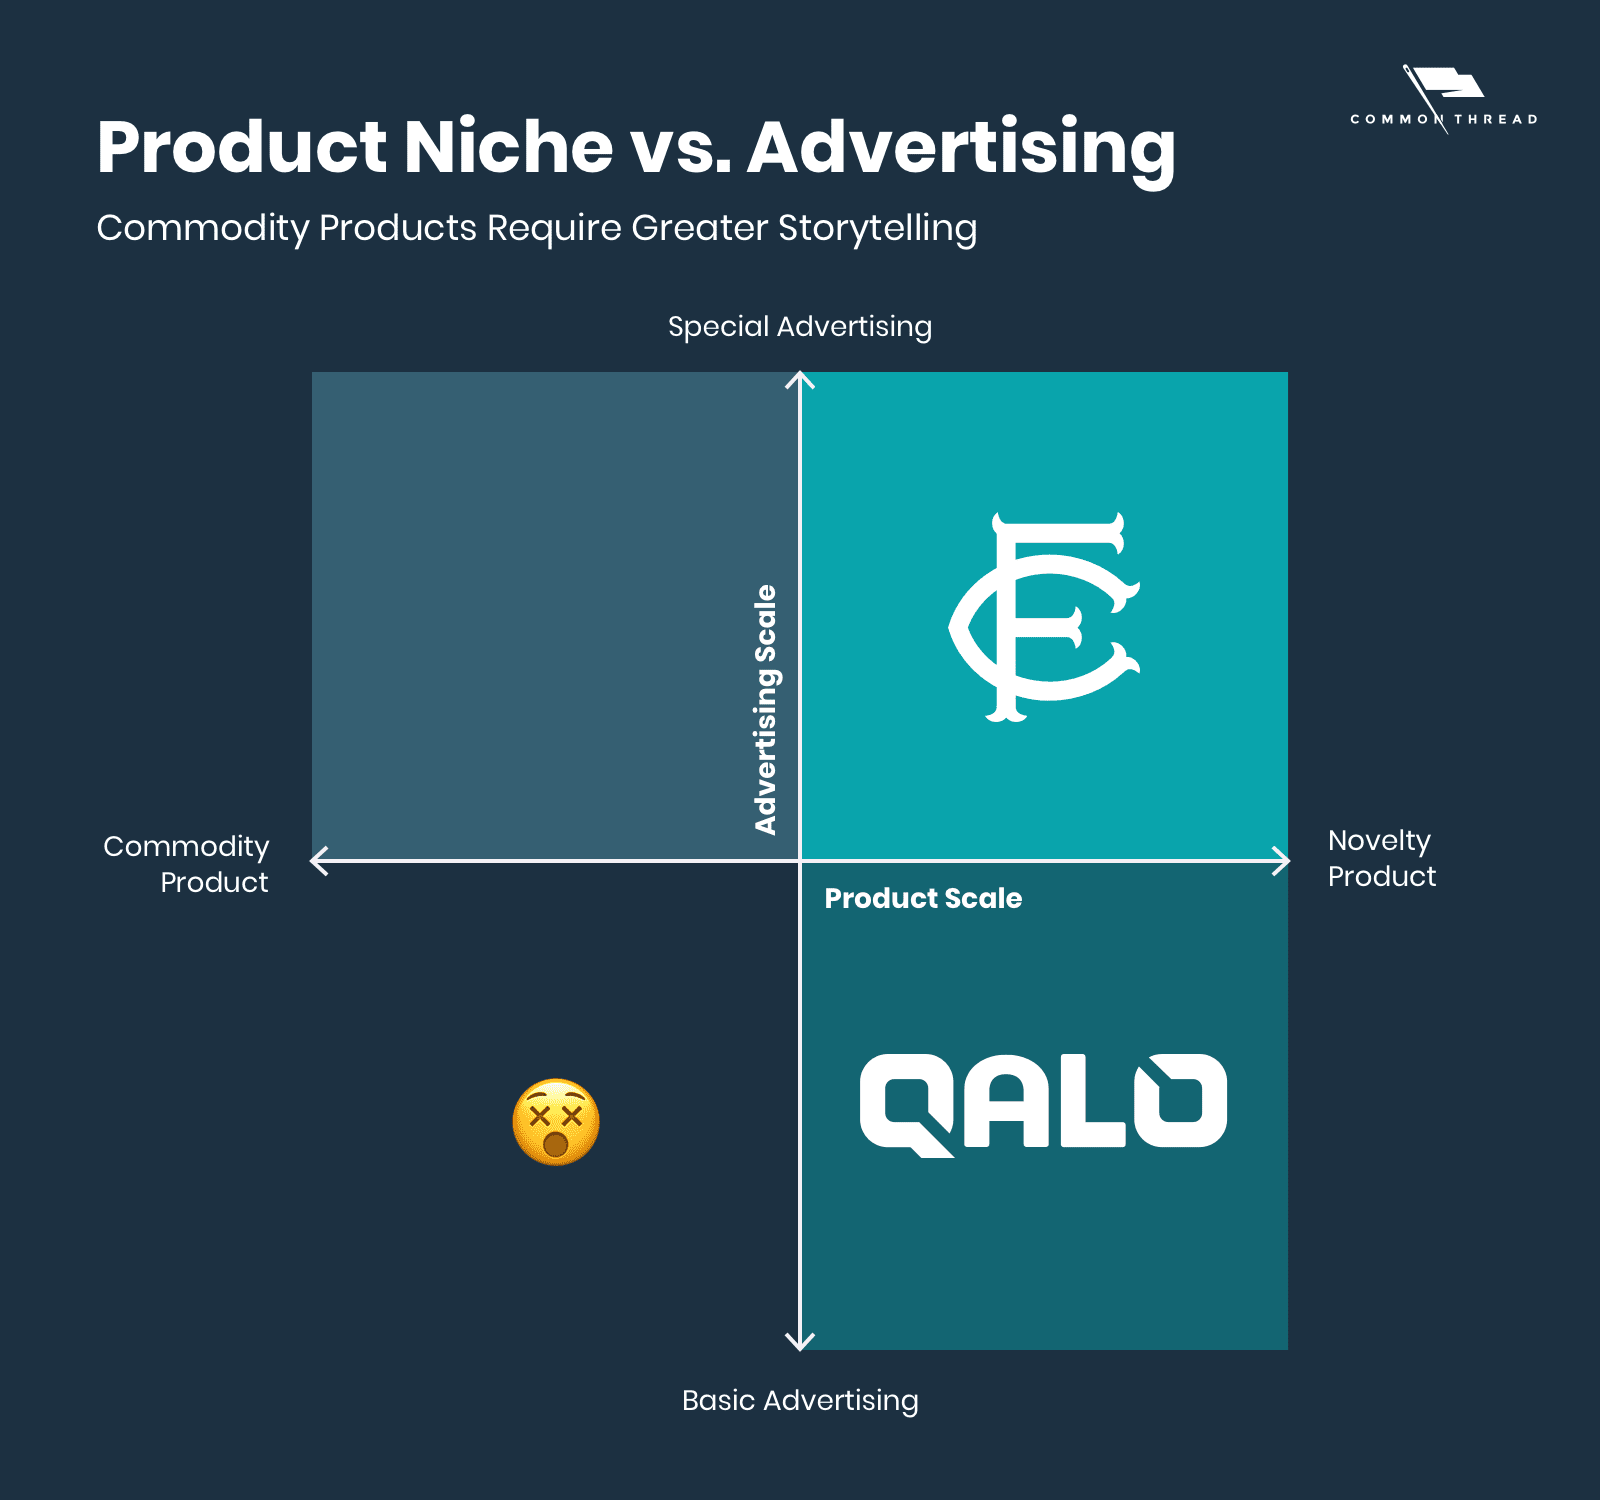 Product Niche vs. Advertising: Commodity products require greater storytelling